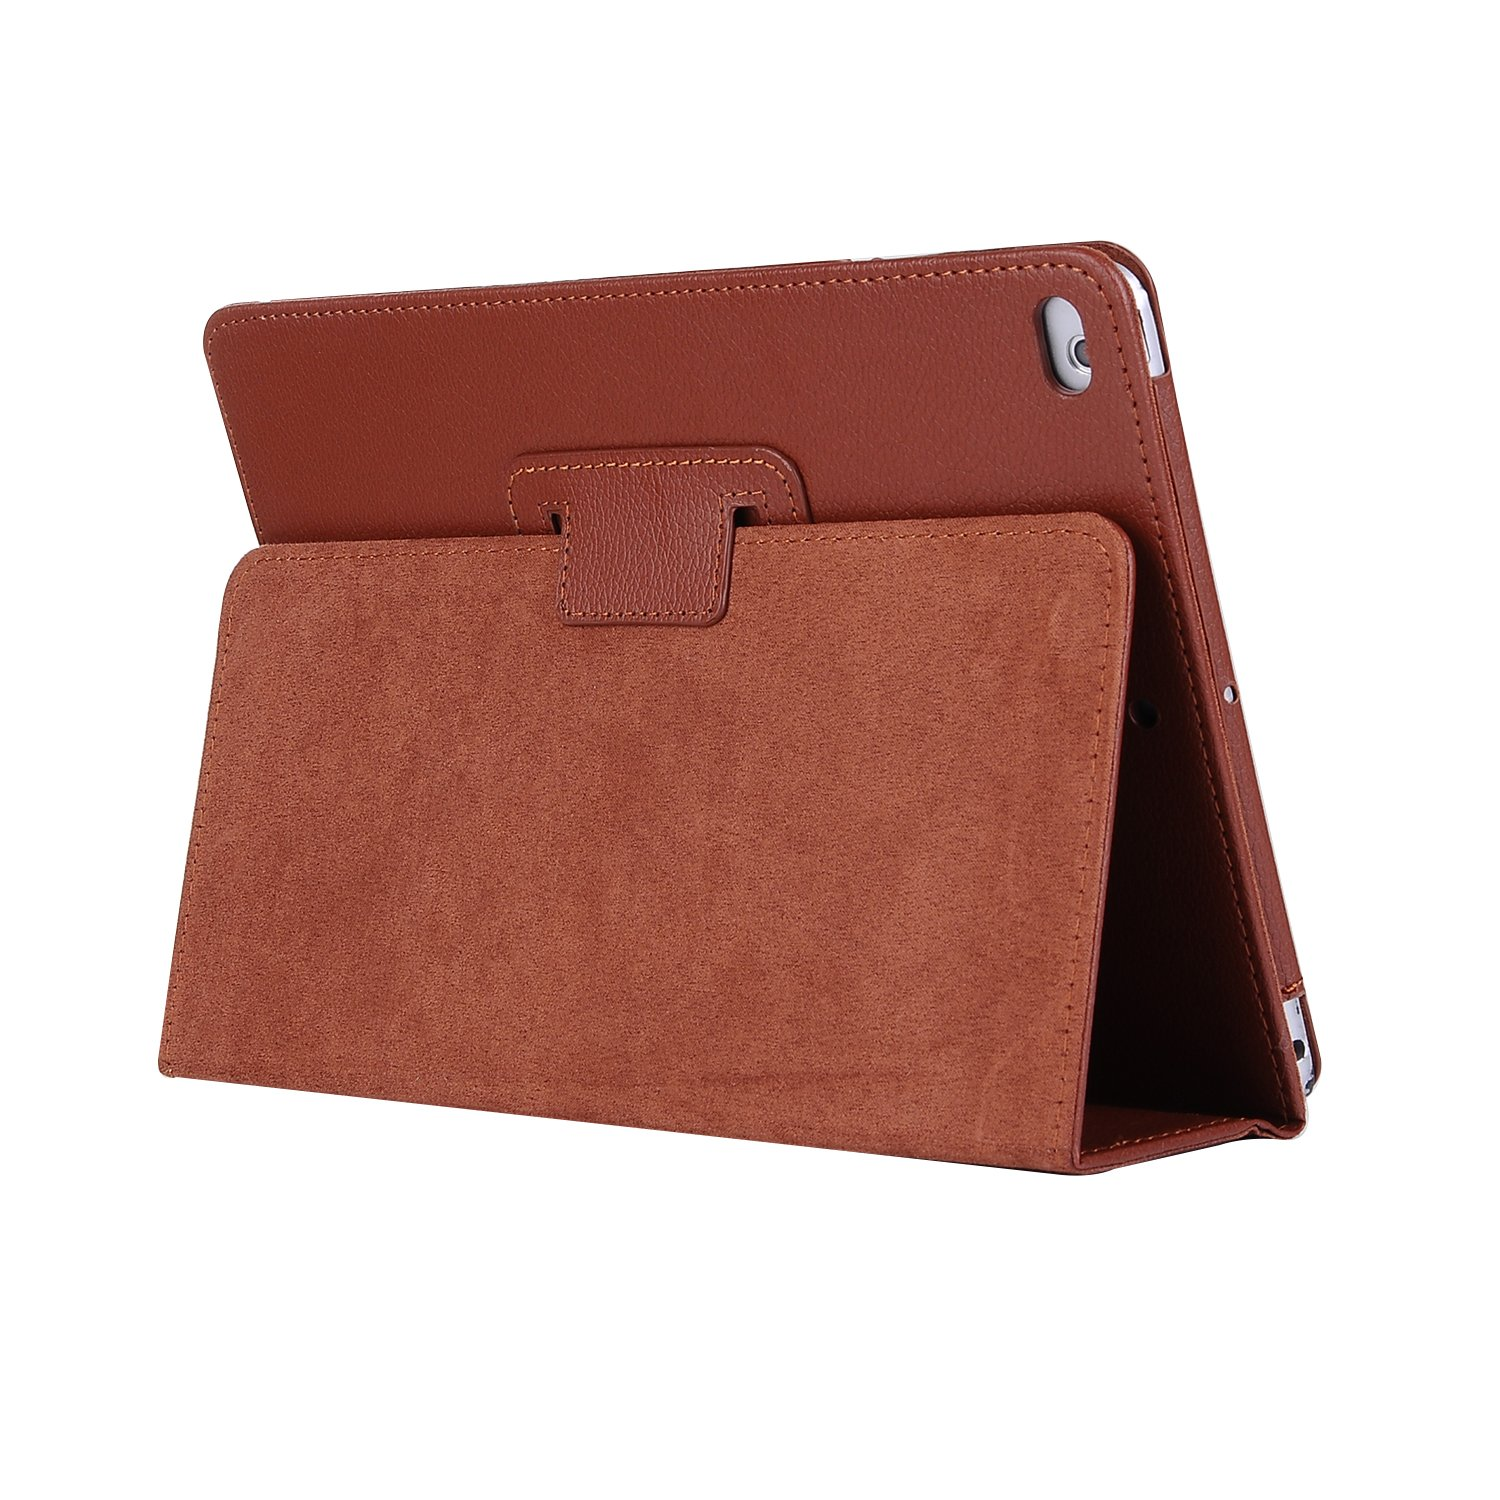 Funda A2232 A2200 Capa Tablet for Foilo-Stand iPad Apple Case A2197 7th Cover